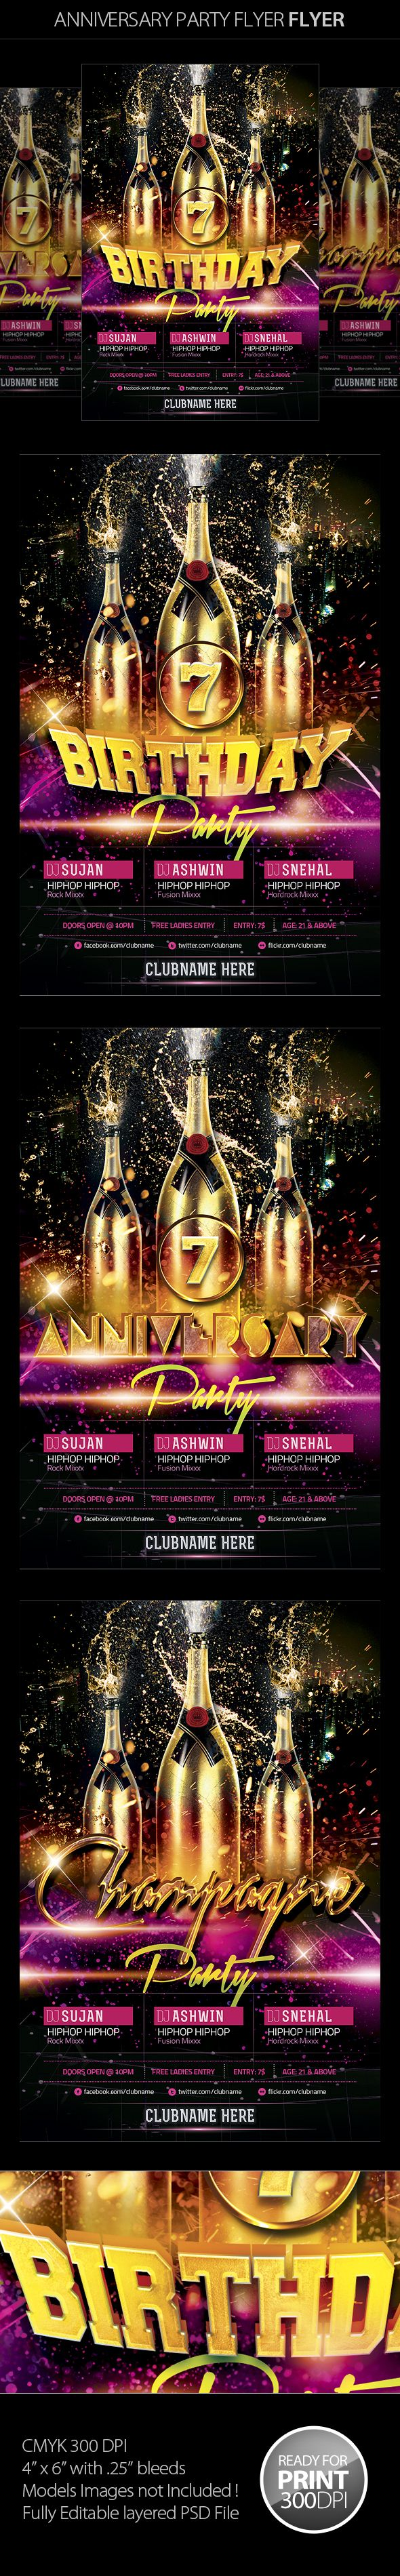 Anniversary Party Flyer by Mahantesh Nagashetty, via Behance